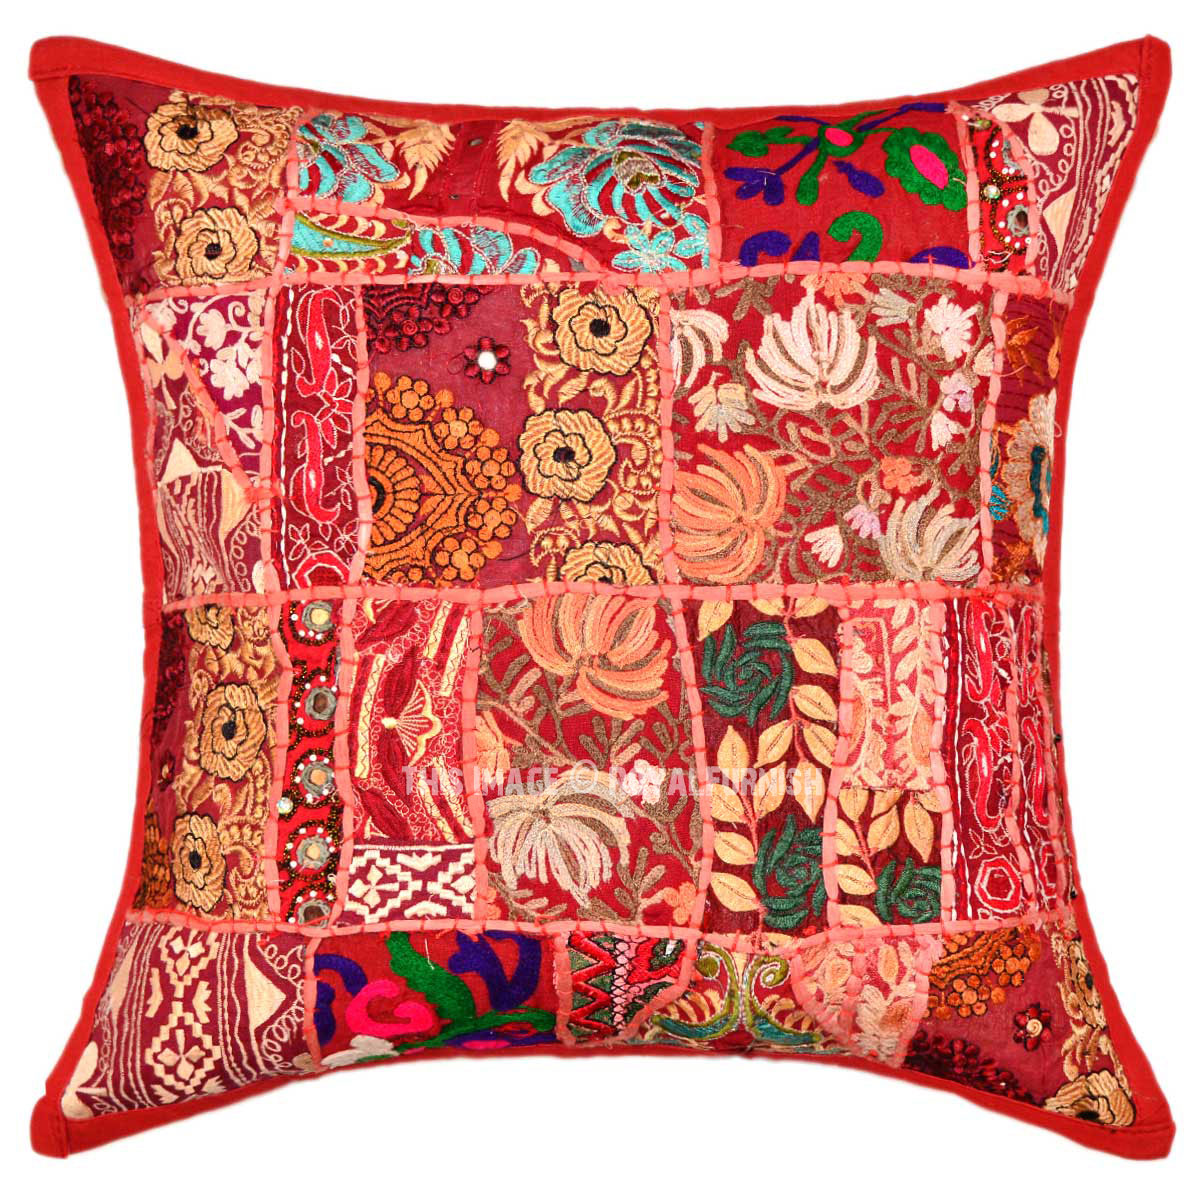 Throw Me A Pillow Coupon Code : 18X18 Red Unique One-Of-A-Kind Patchwork Boho Throw Pillow Sham - RoyalFurnish.com